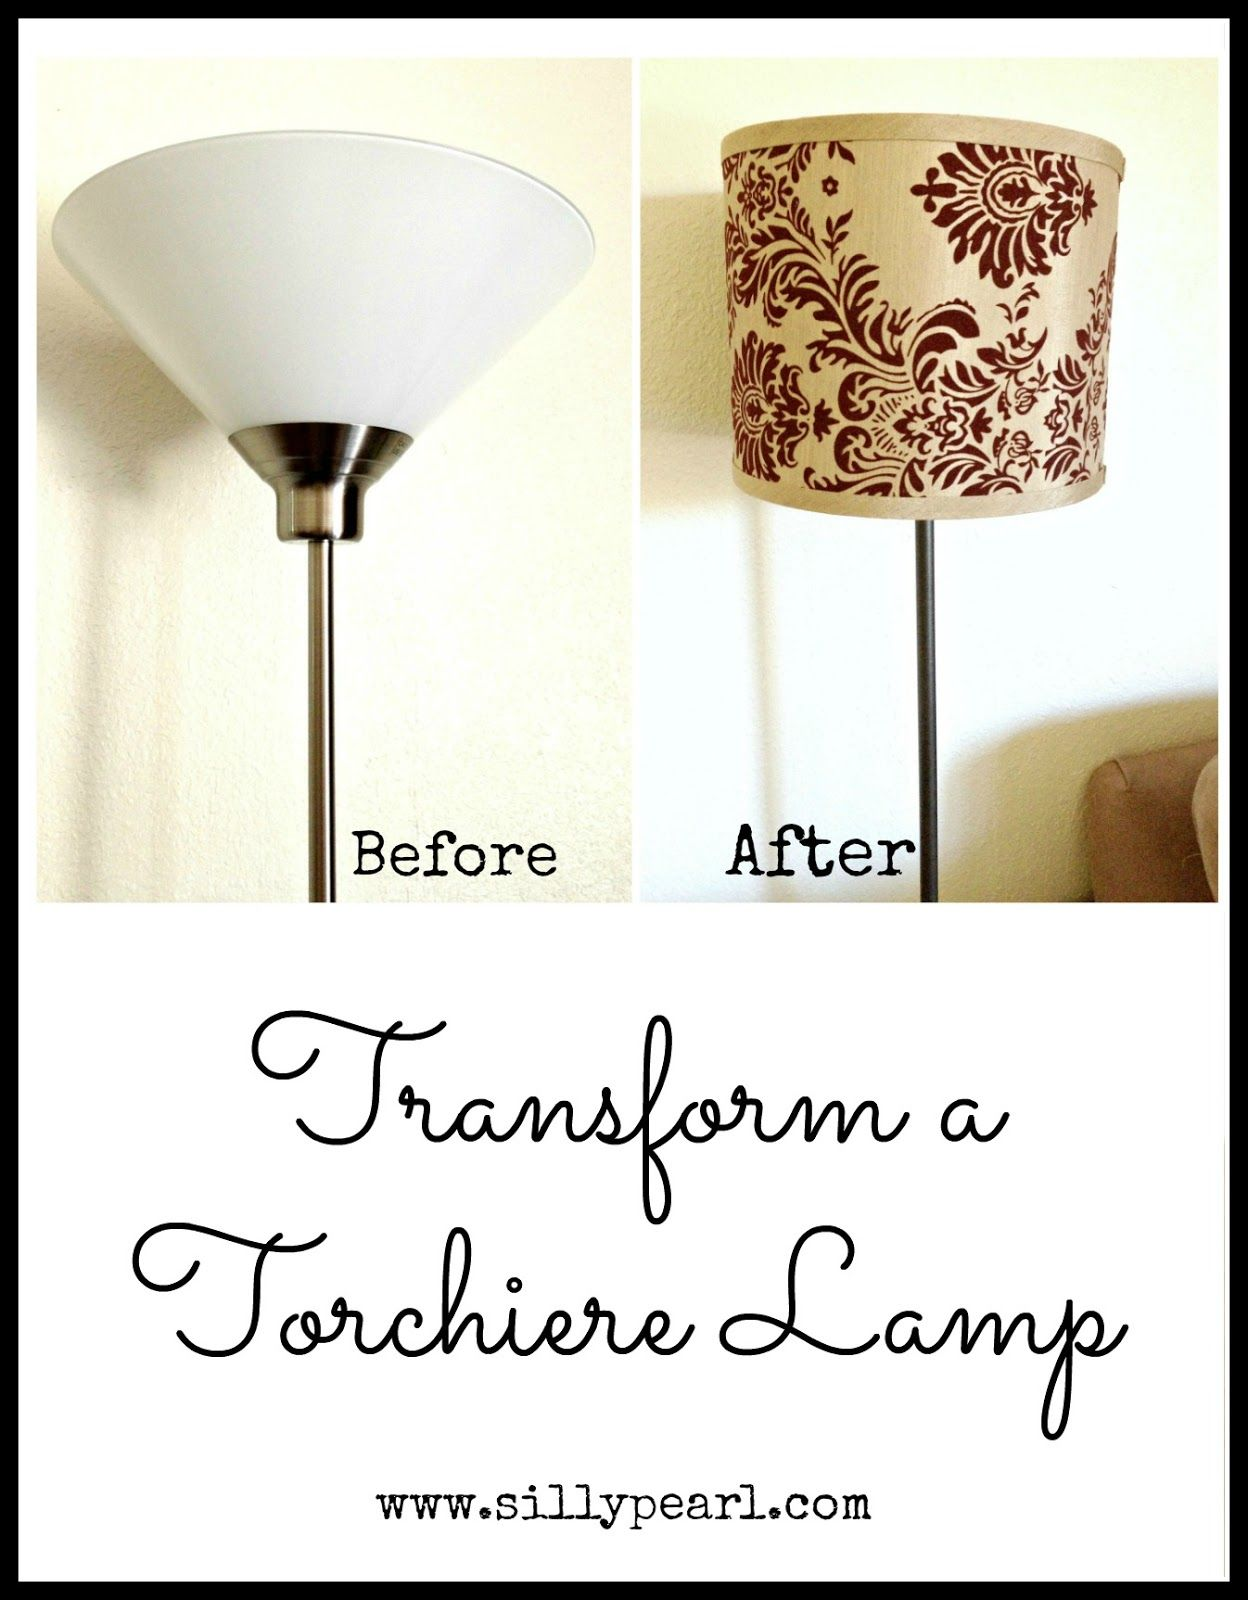 Transform a torchiere lamp to a drum shade floor lamp drum shade home the silly pearl floor lamp redofloor lamp shadesikea aloadofball Image collections